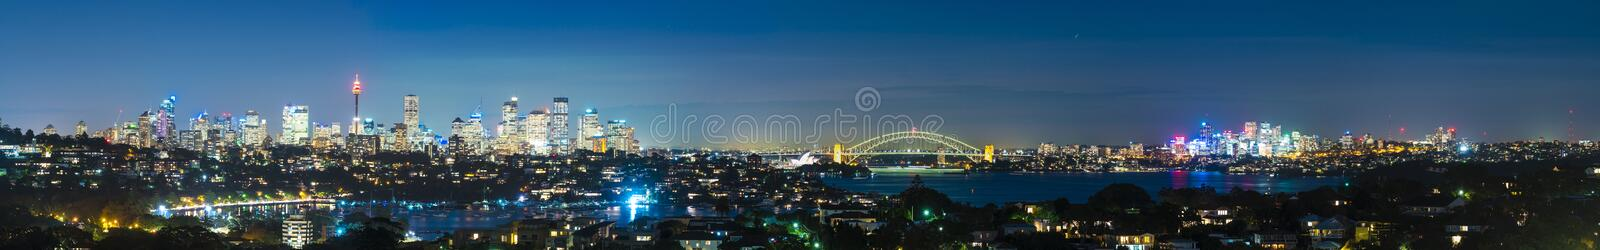 Panorama of Sydney at night stock photography